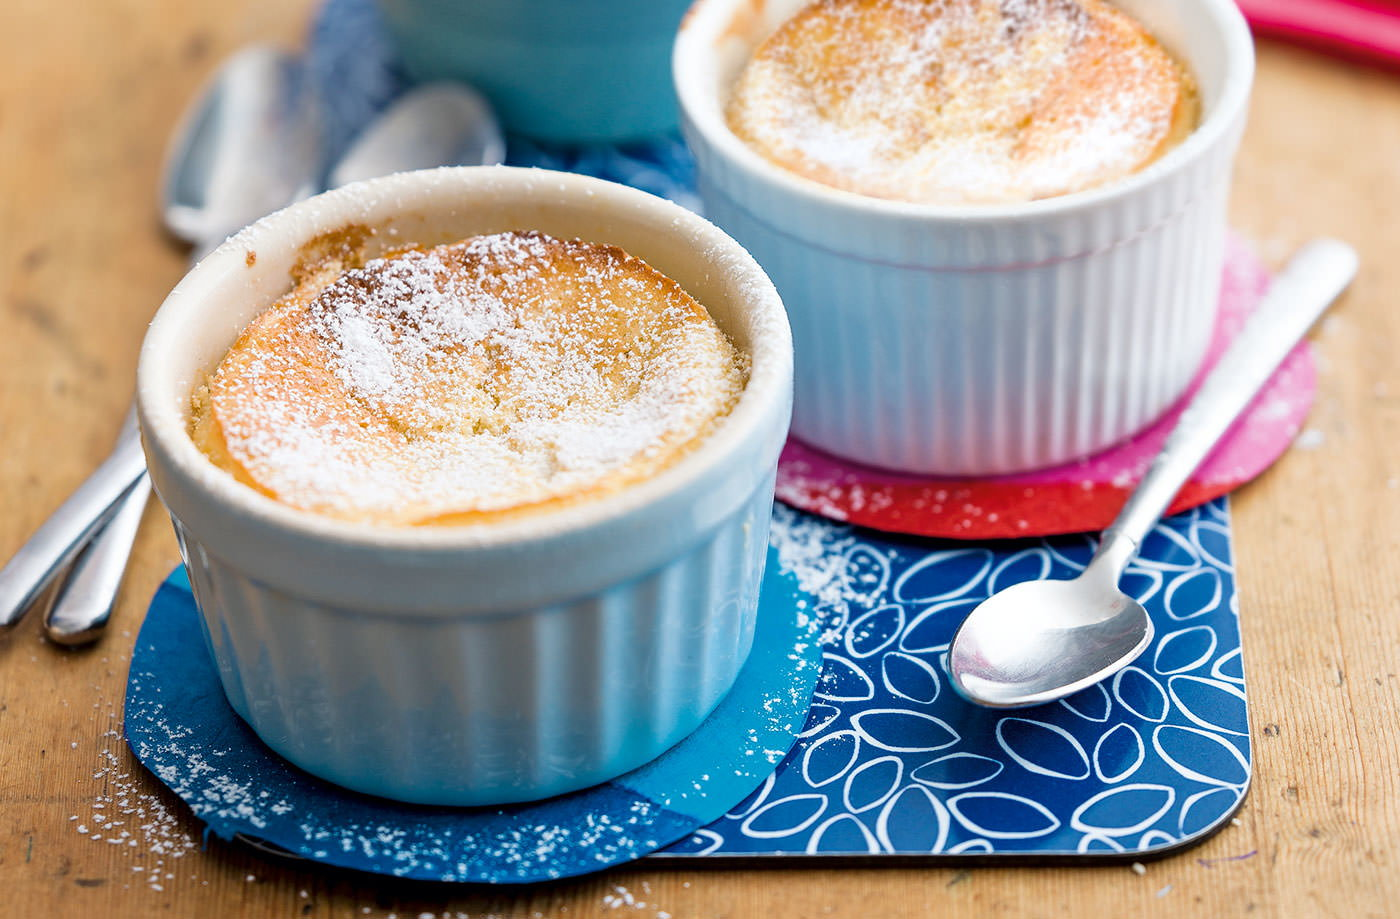 Baked lemon puddings recipe